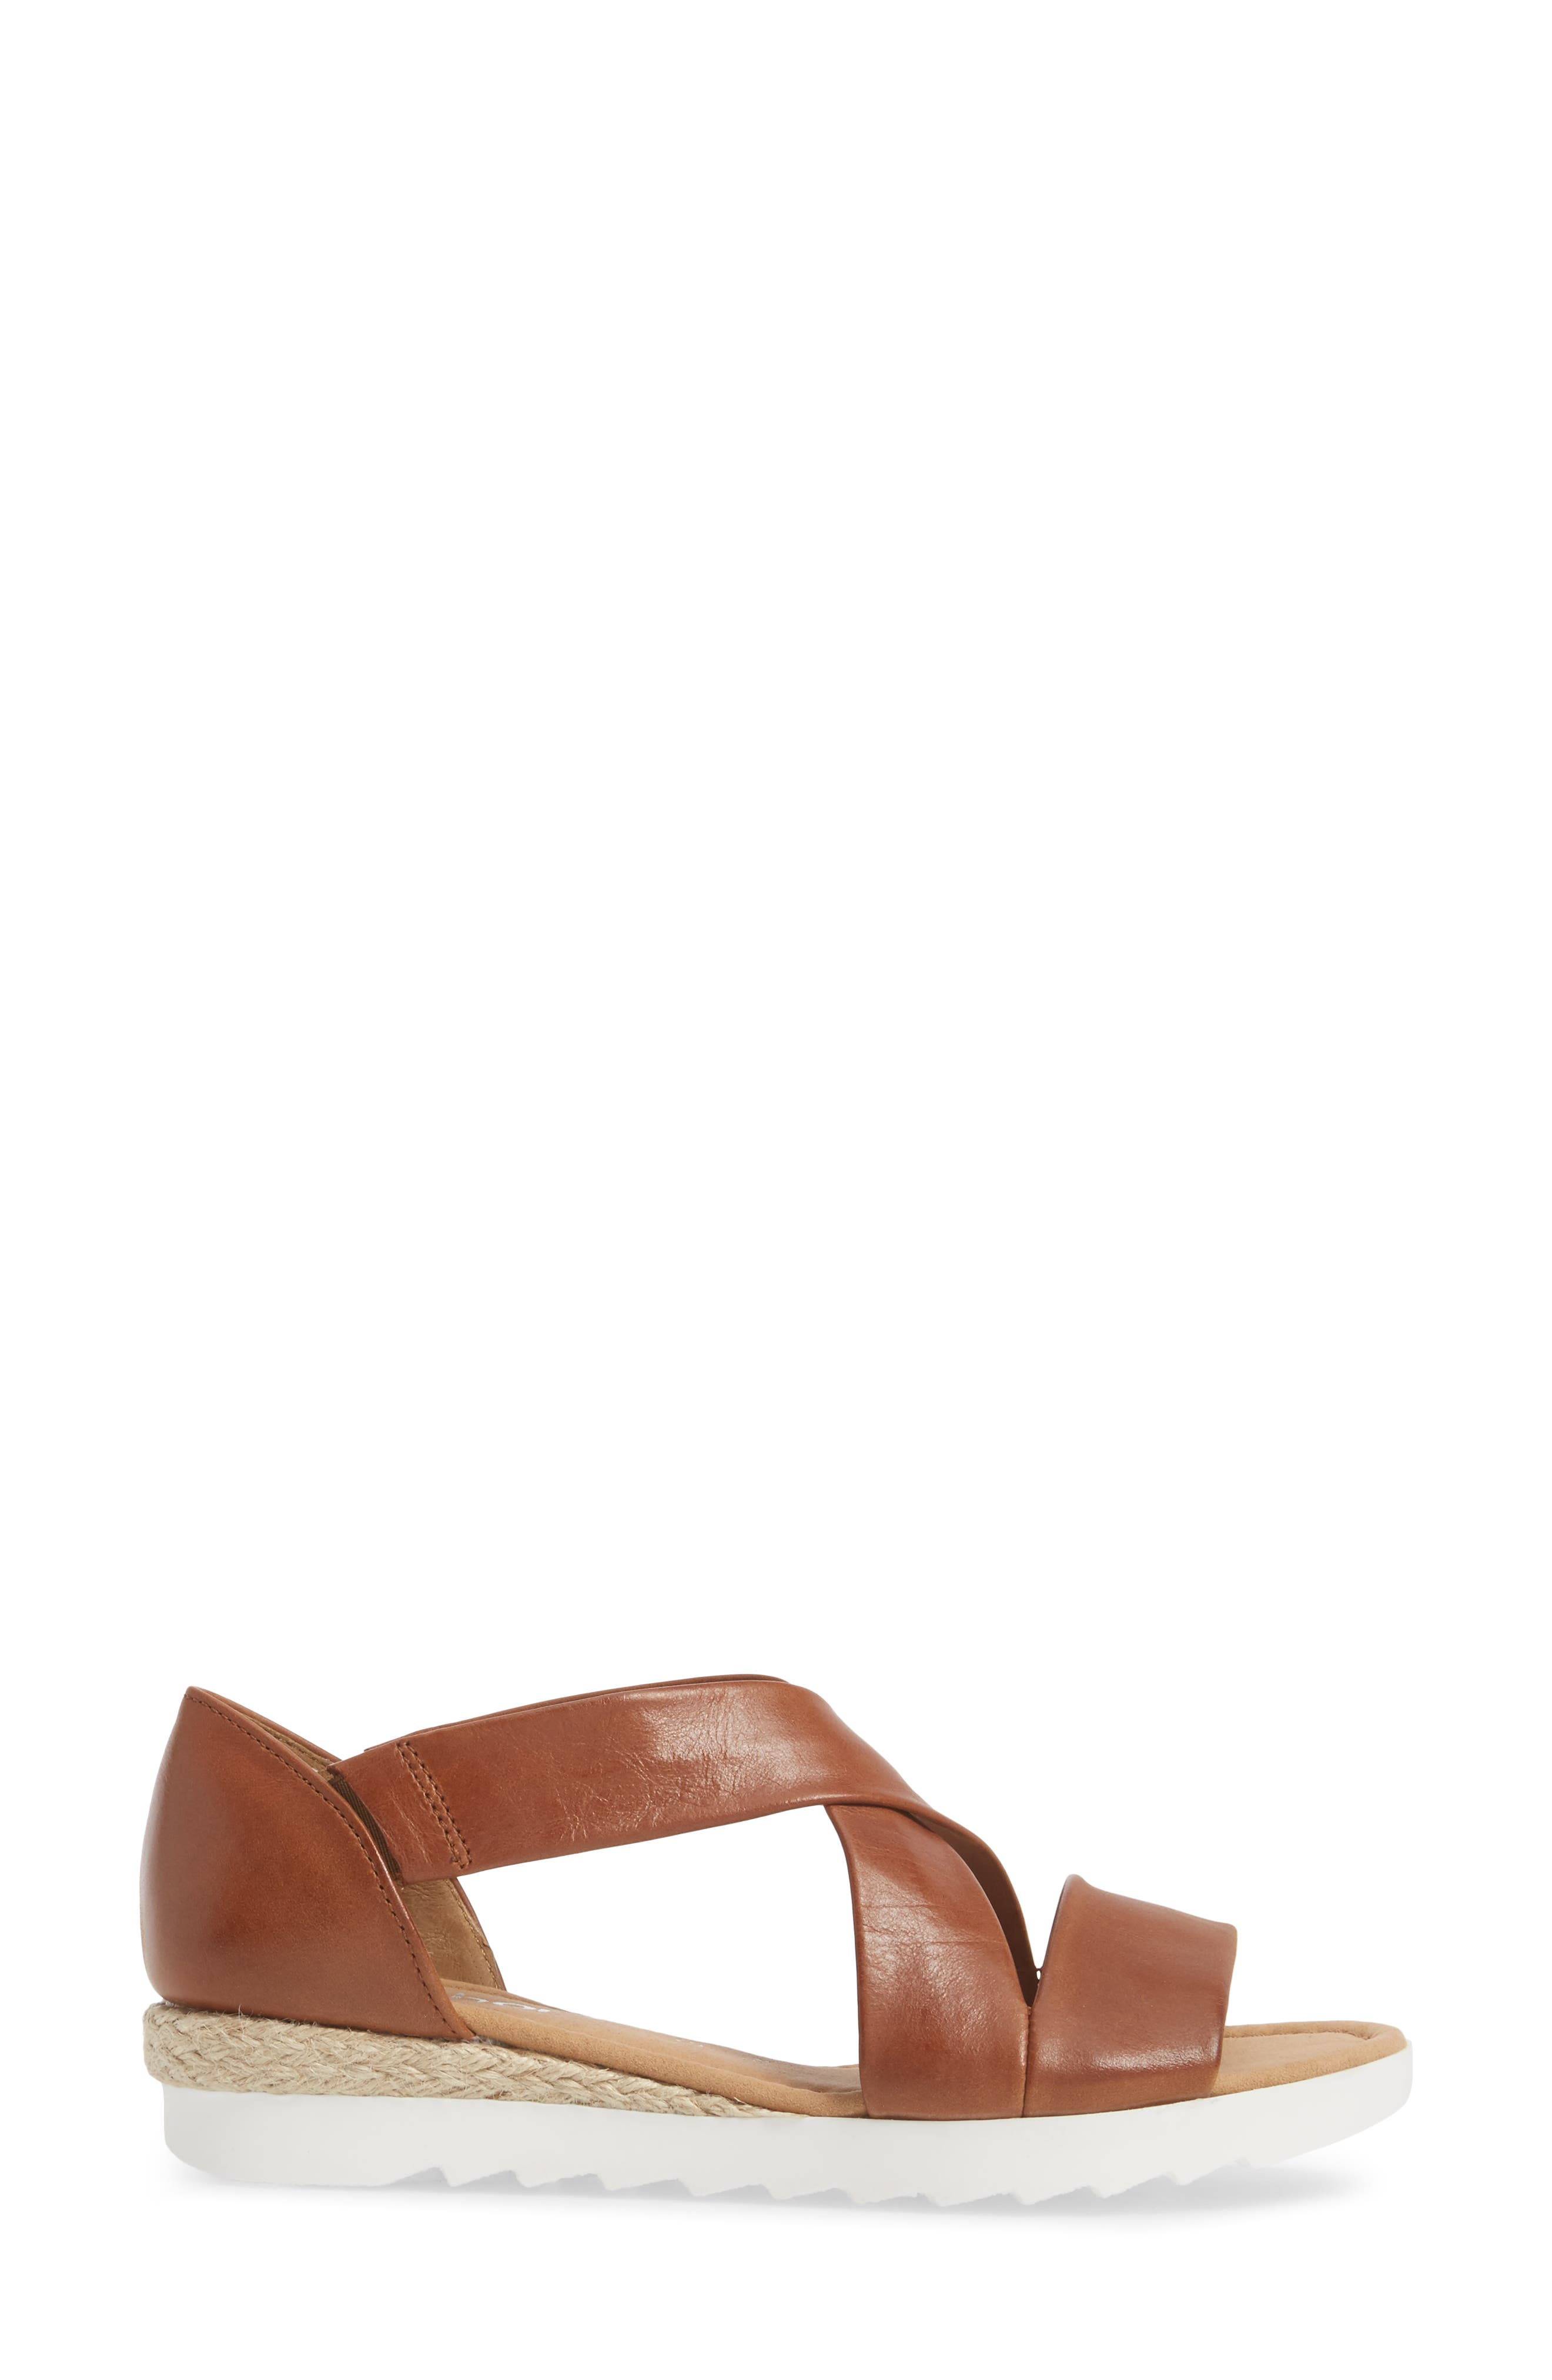 Cross Strap Sandal,                             Alternate thumbnail 3, color,                             BROWN LEATHER